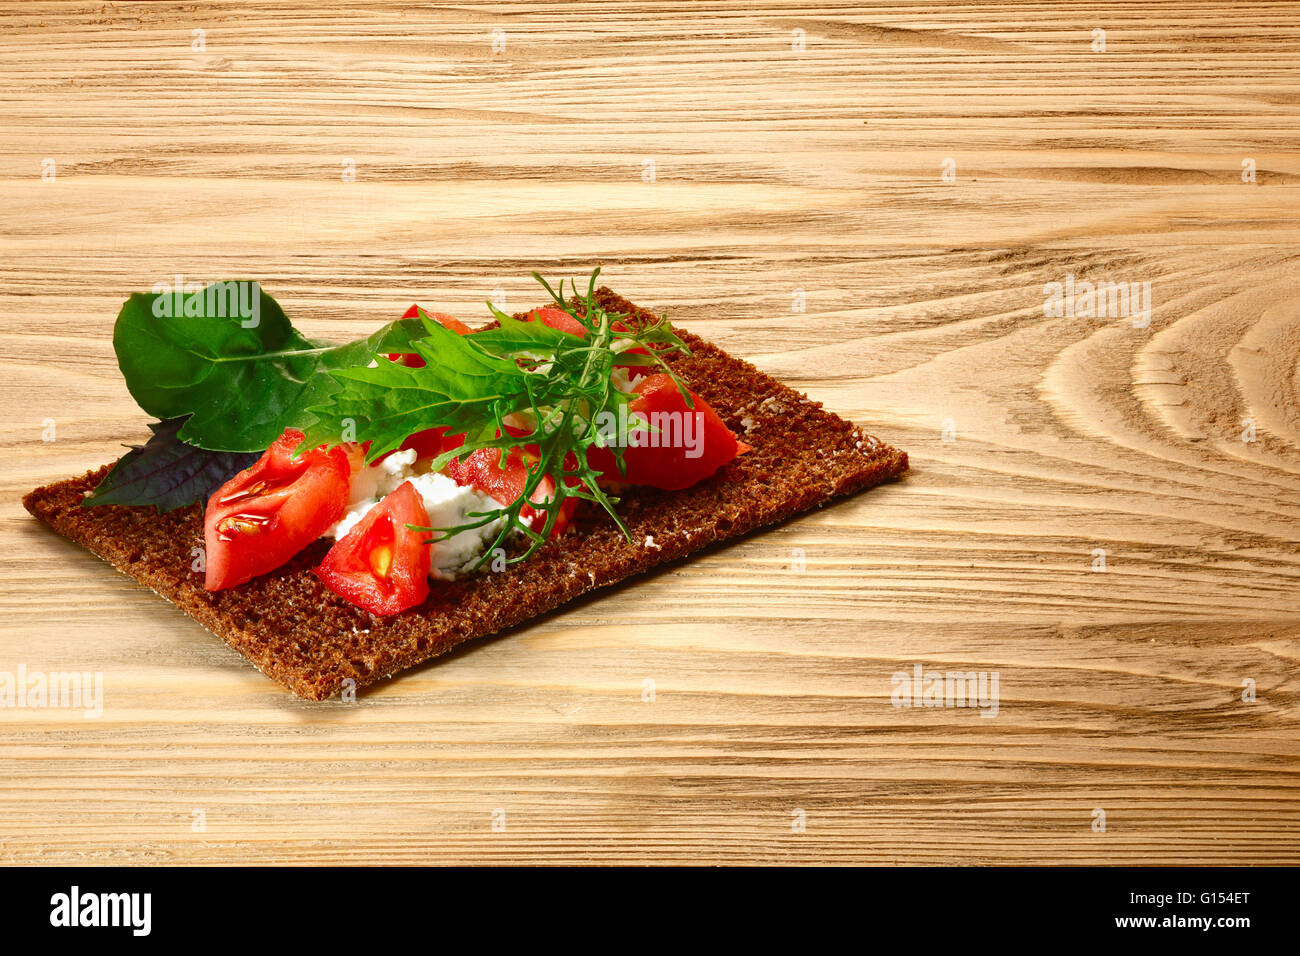 Bread crisp (crispbread open-faced sandwich) with chopped heirloom tomato, cream cheese and leafy green salad on - Stock Image